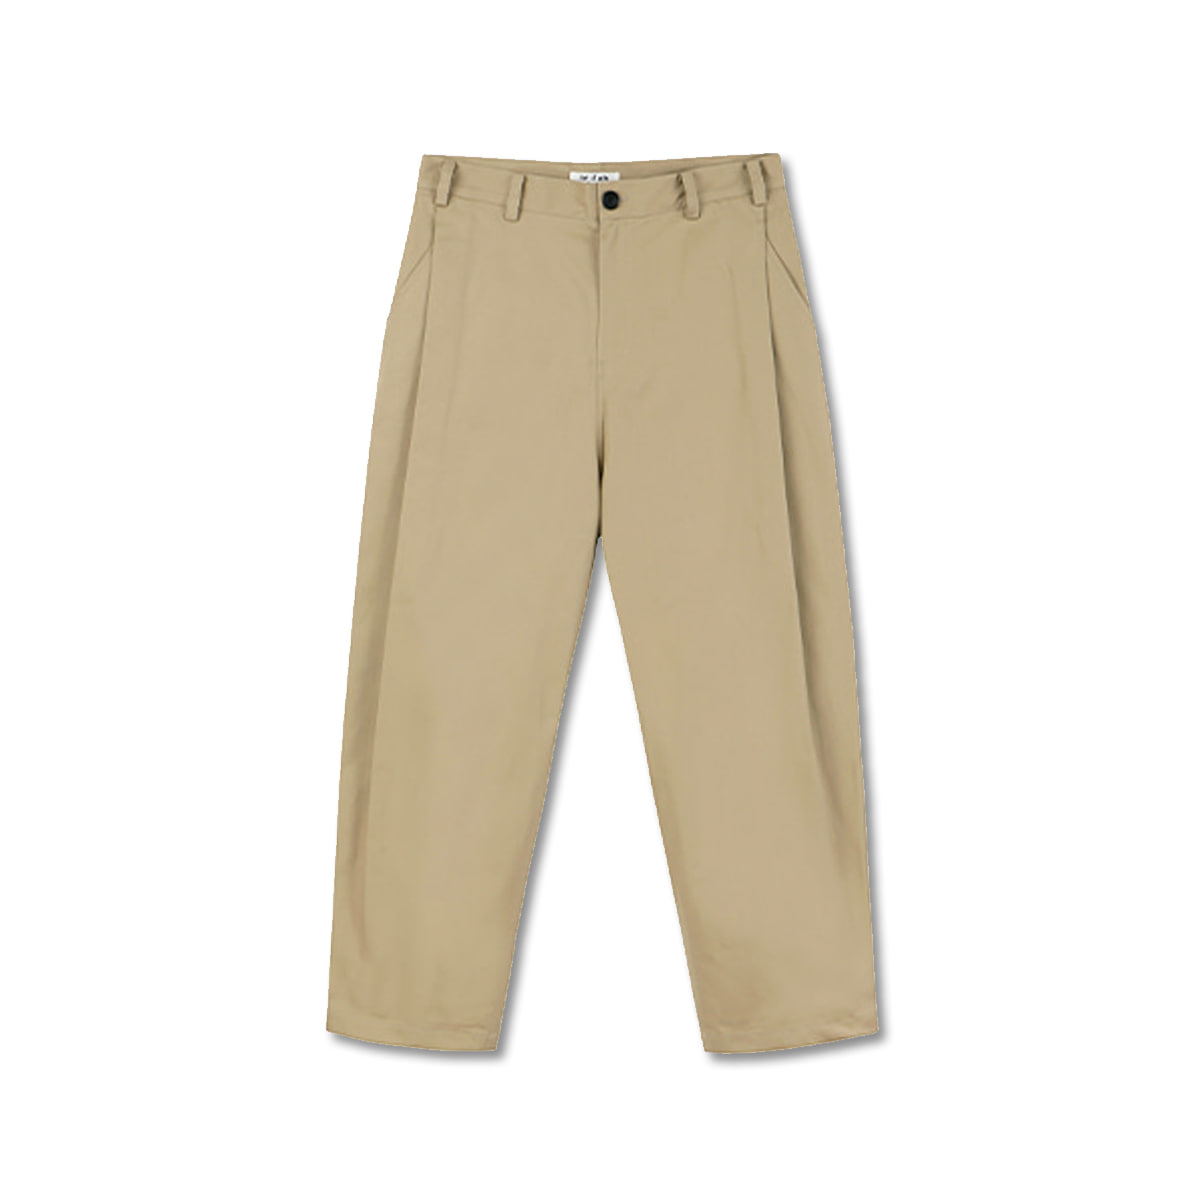 [ART IF ACTS] SIDE TUCK PANTS 'BEIGE'